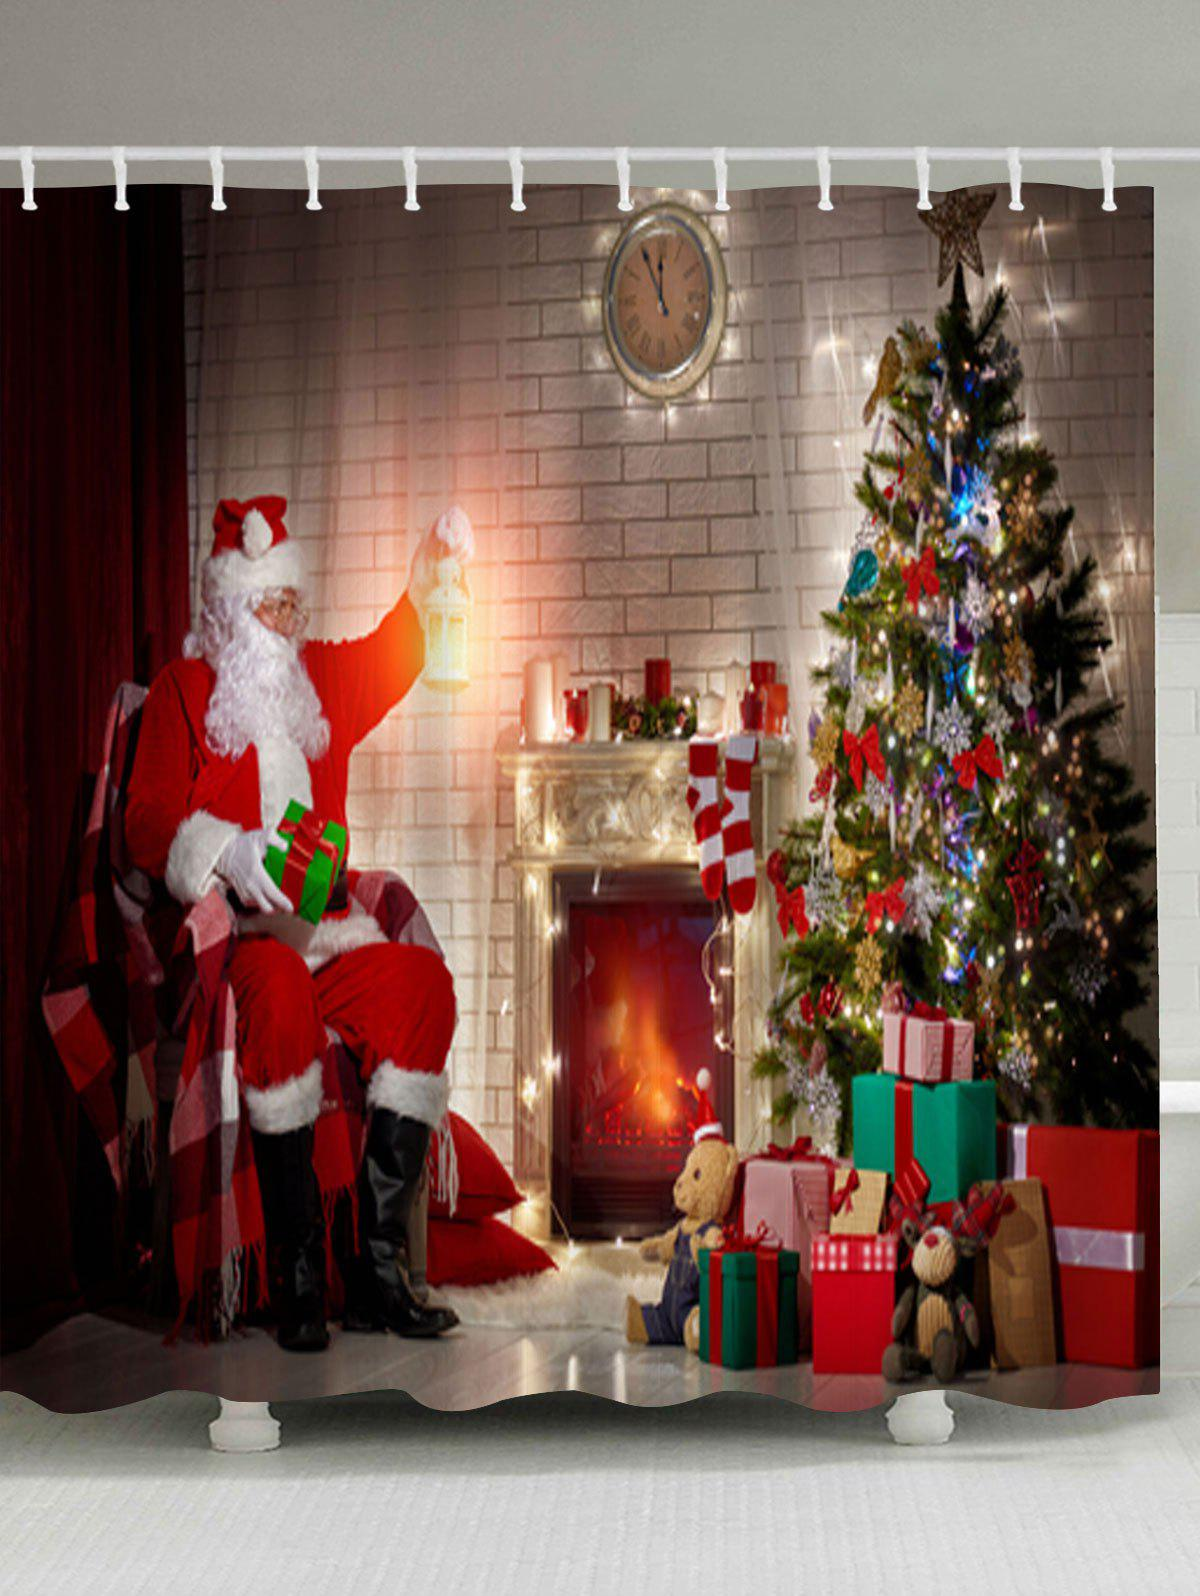 Christmas Tree Fireplace Santa Claus Waterproof Bath CurtainHOME<br><br>Size: W71 INCH * L71 INCH; Color: COLORMIX; Products Type: Shower Curtains; Materials: Polyester; Pattern: Christmas Tree,Santa Claus; Style: Festival; Number of Hook Holes: W59 inch*L71 inch: 10; W71 inch*L71 inch: 12; W71 inch*L79 inch: 12; Package Contents: 1 x Shower Curtain 1 x Hooks (Set);